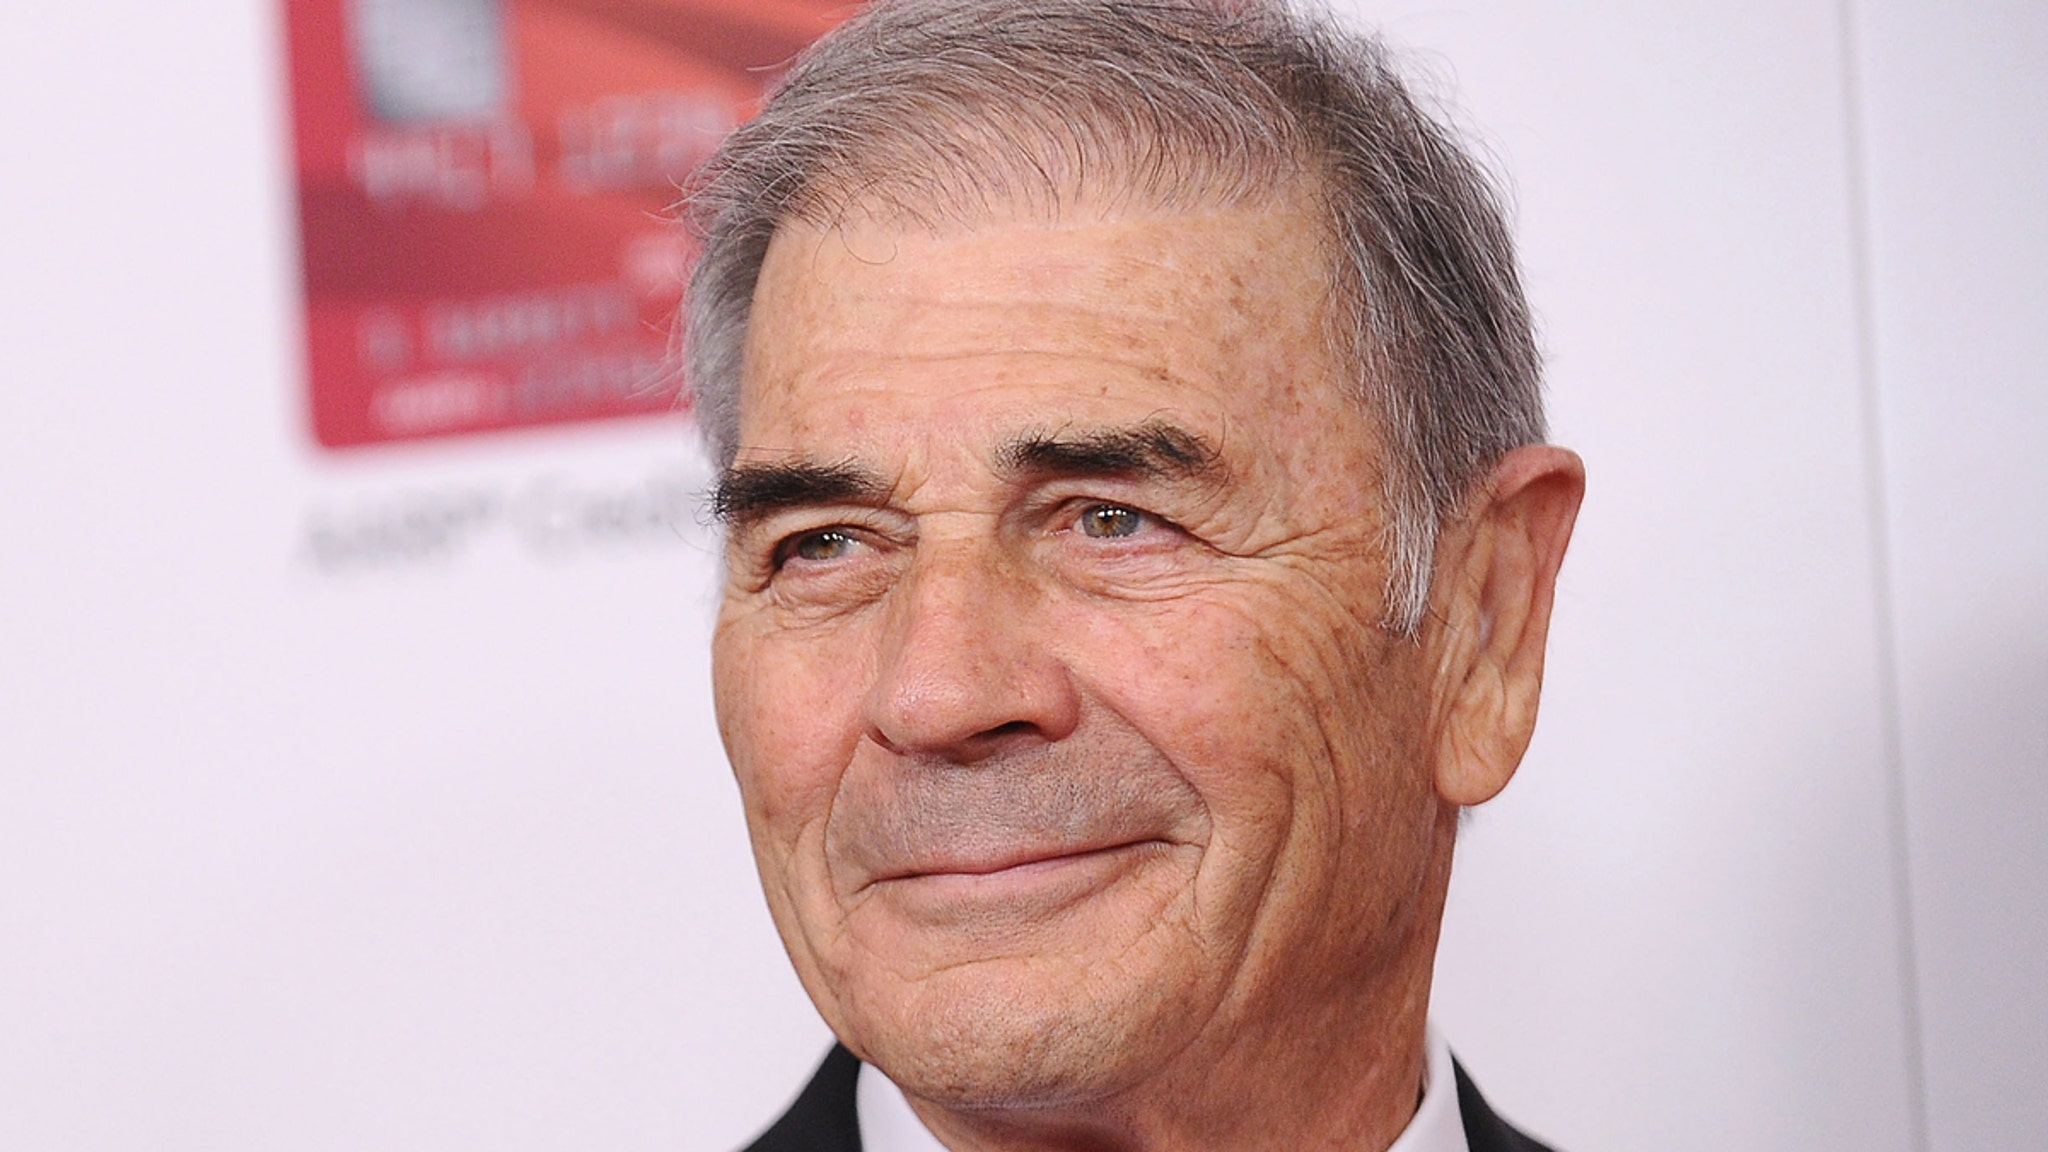 'Jackie Brown' Star Robert Forster Dead at 78 from Brain Cancer